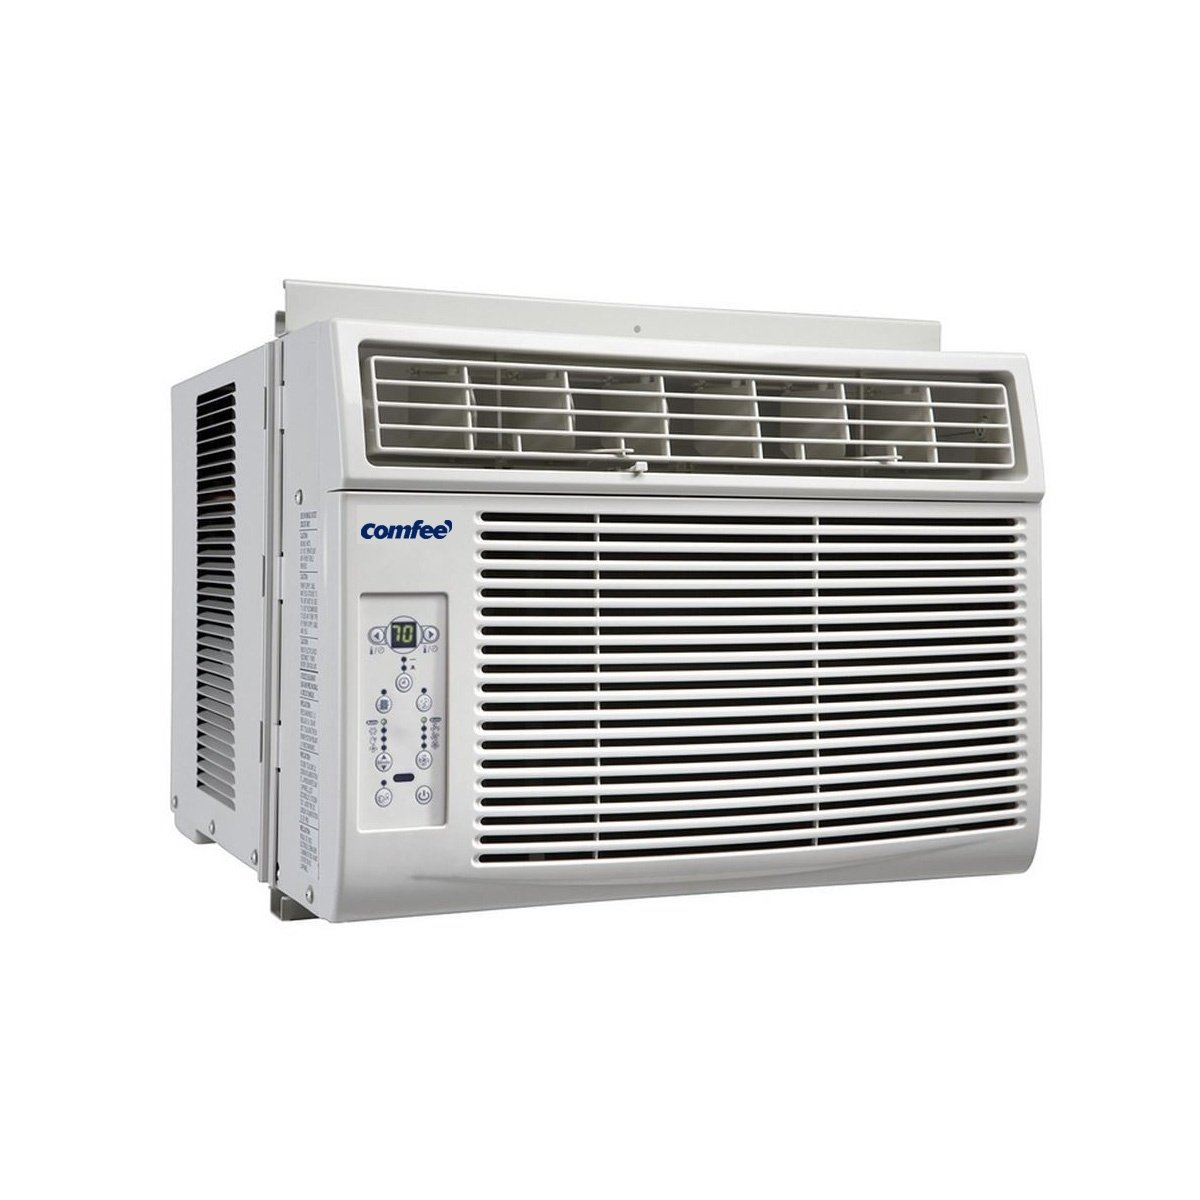 115v comfee r410a window unit cool wizard air for 1800 btu window air conditioner